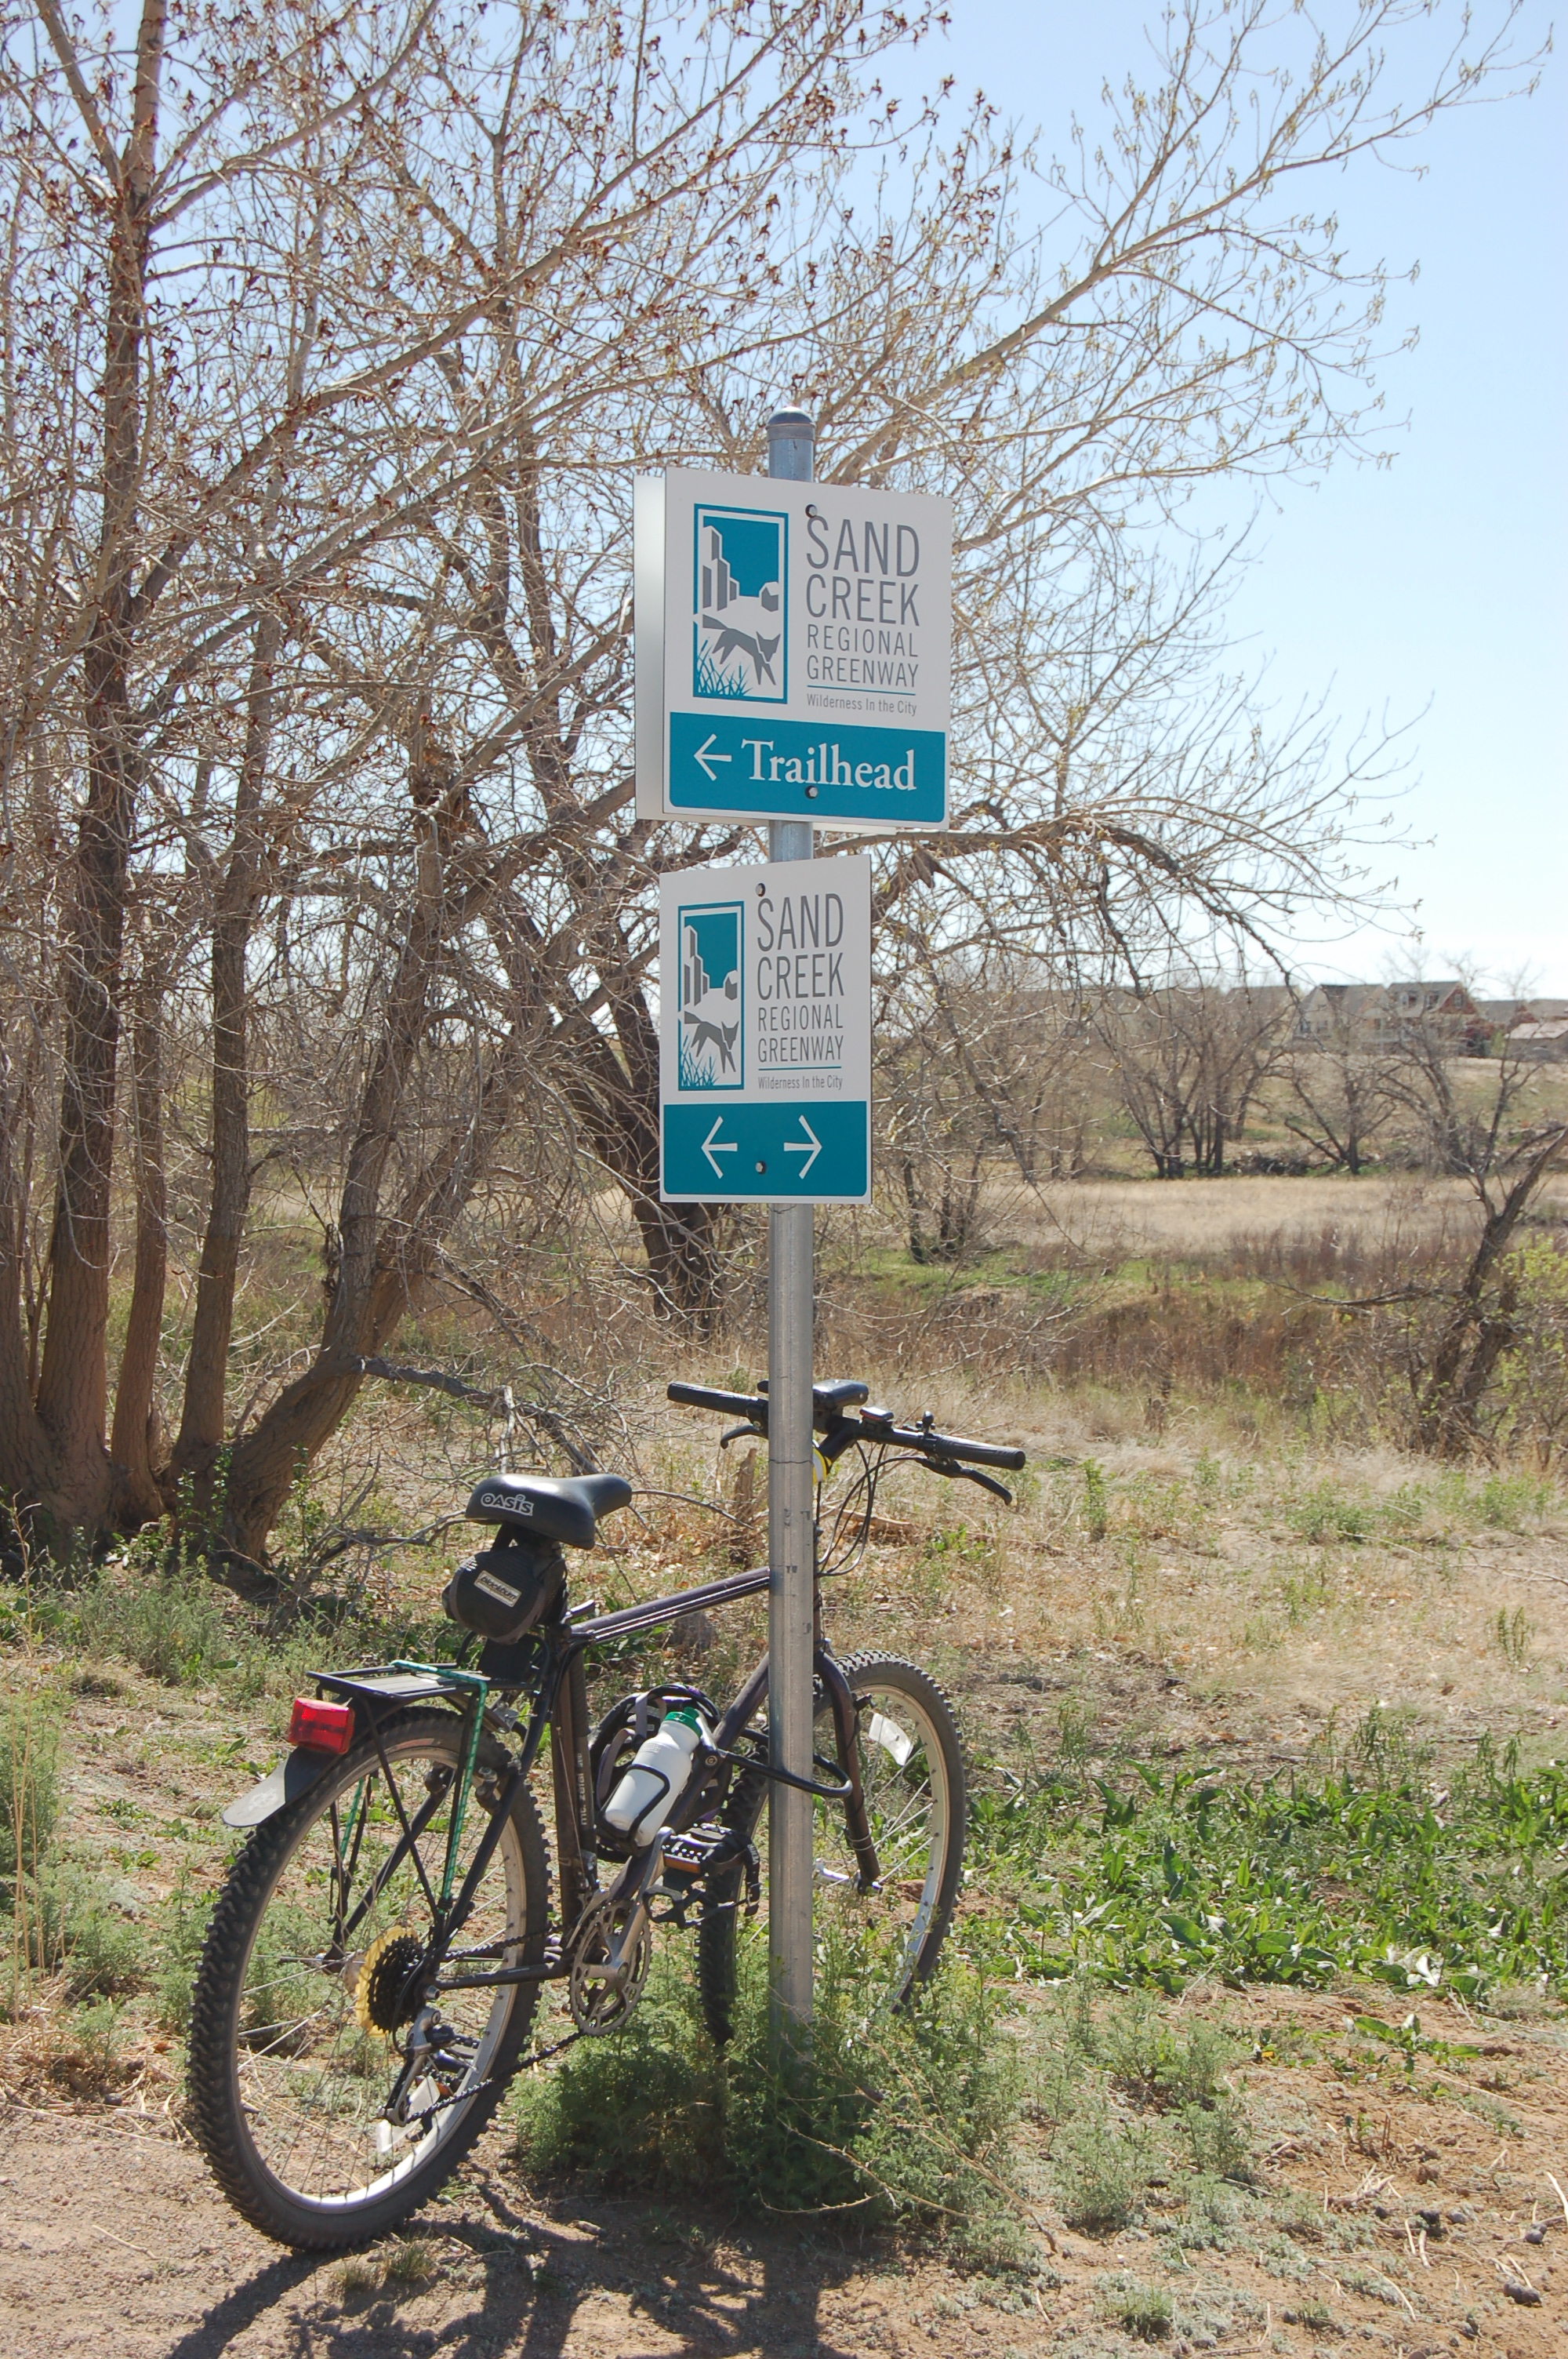 Trail Maps Sand Creek Regional Greenway